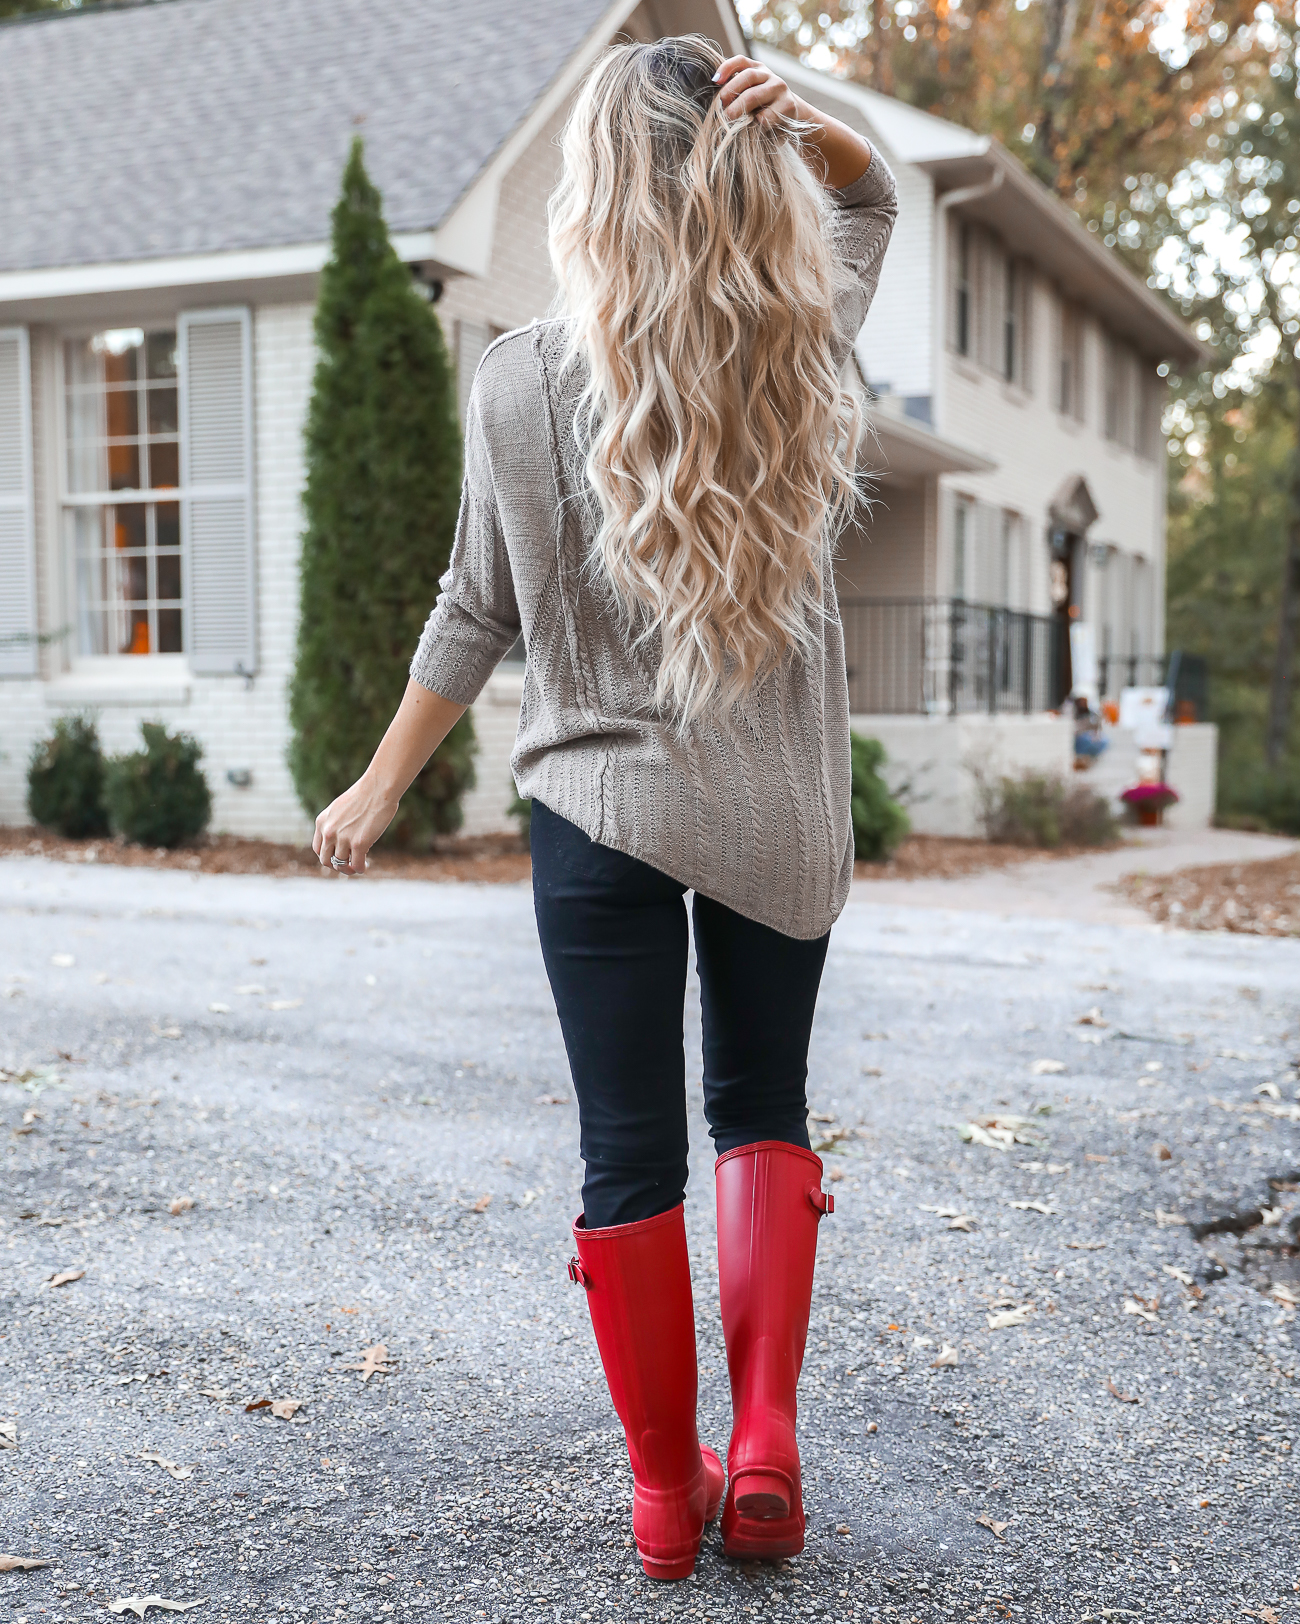 Thangsgiving Day Outfit Idea Red Hunter Boots Burberry Scarf Dog sweater Casual Holiday Outfit Idea-27